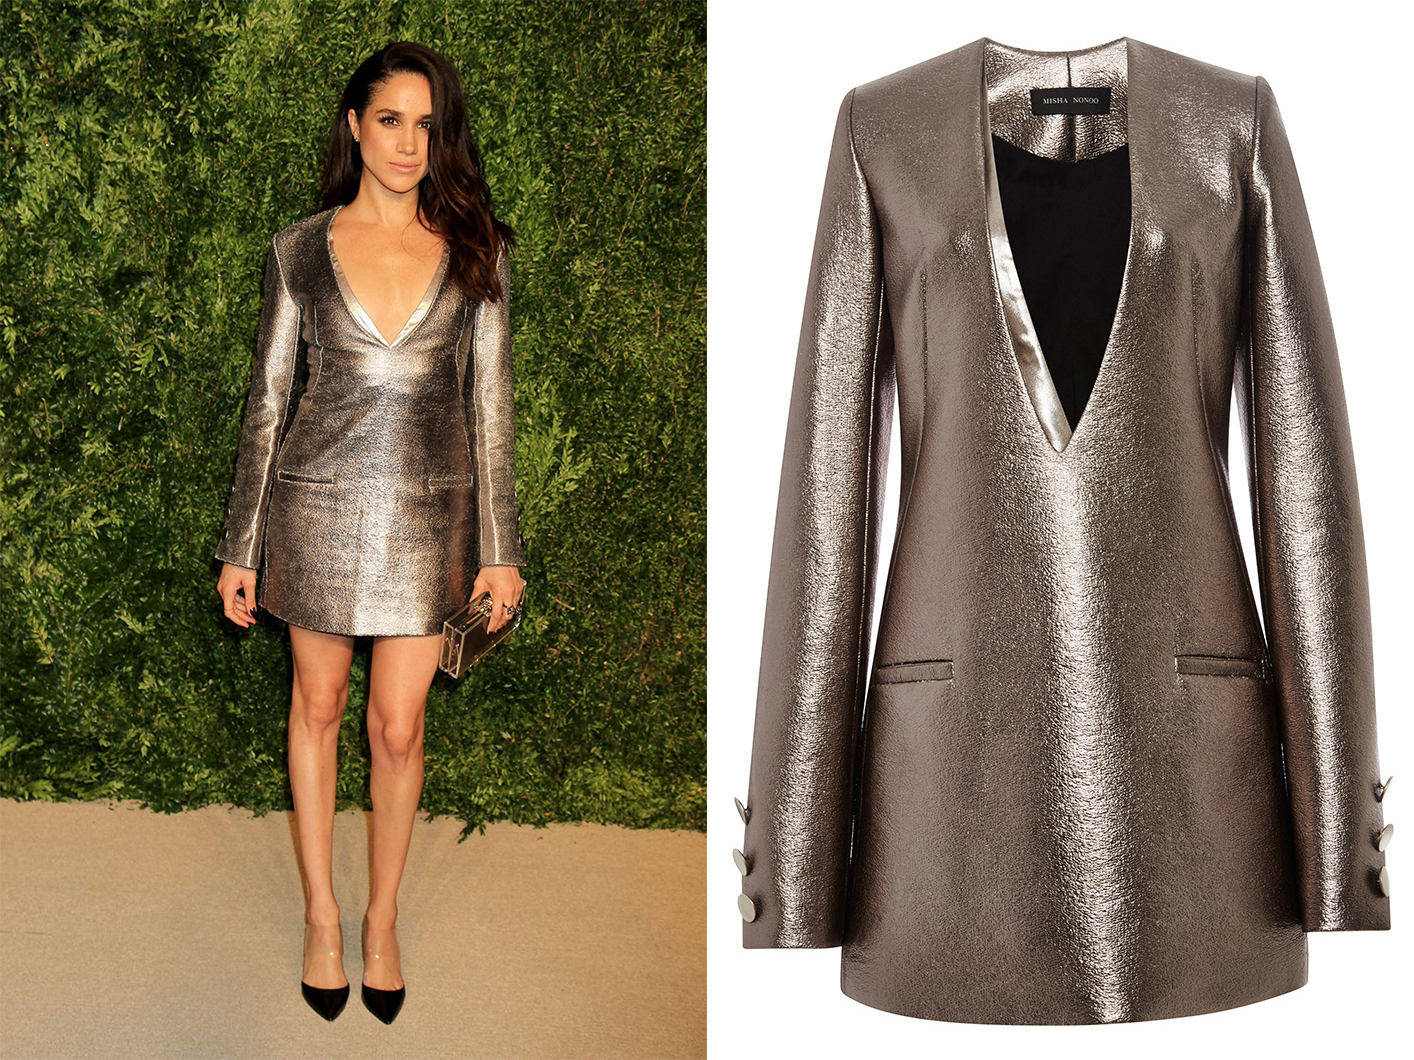 Meghan Markle in Misha Nonoo metallic dress at the 12th annual CFDA/Vogue Fashion Fund Awards at Spring Studios on November 2, 2015 in New York City.